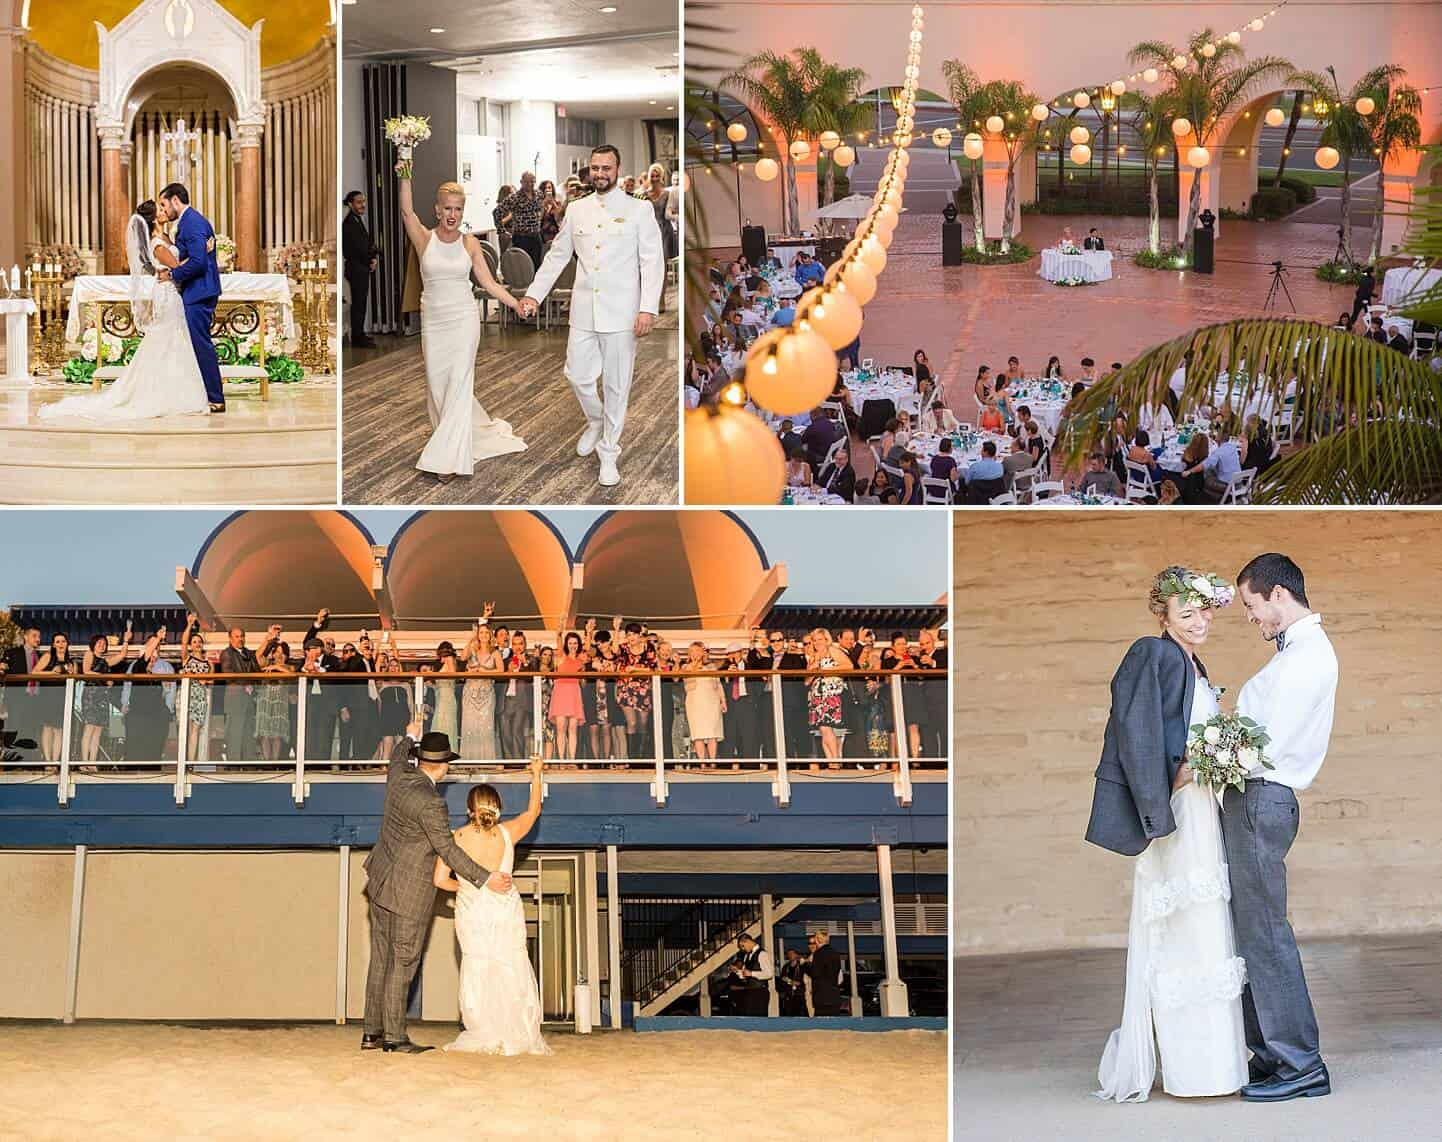 Photo collage of photojournalism wedding photography style by White House Wedding Photography